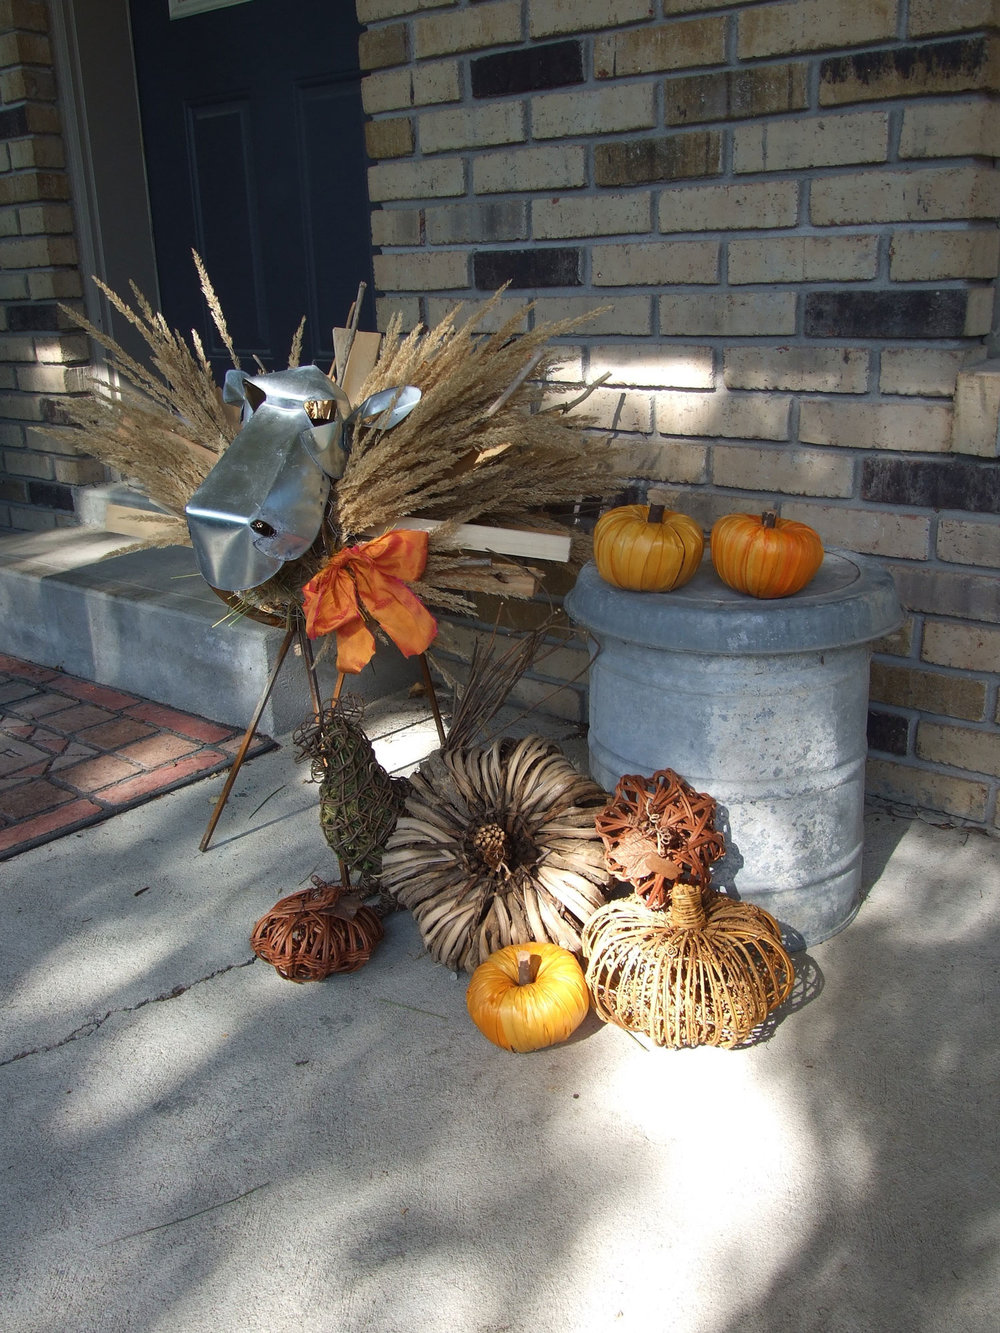 It's early September and already I'm looking forward to cooler autumn breezes, coloured leaves and a welcome respite from summer's searing heat. Yesterday I put a new autumn display on my front porch that includes something new - an adorable metal sheep I purchased over the summer.